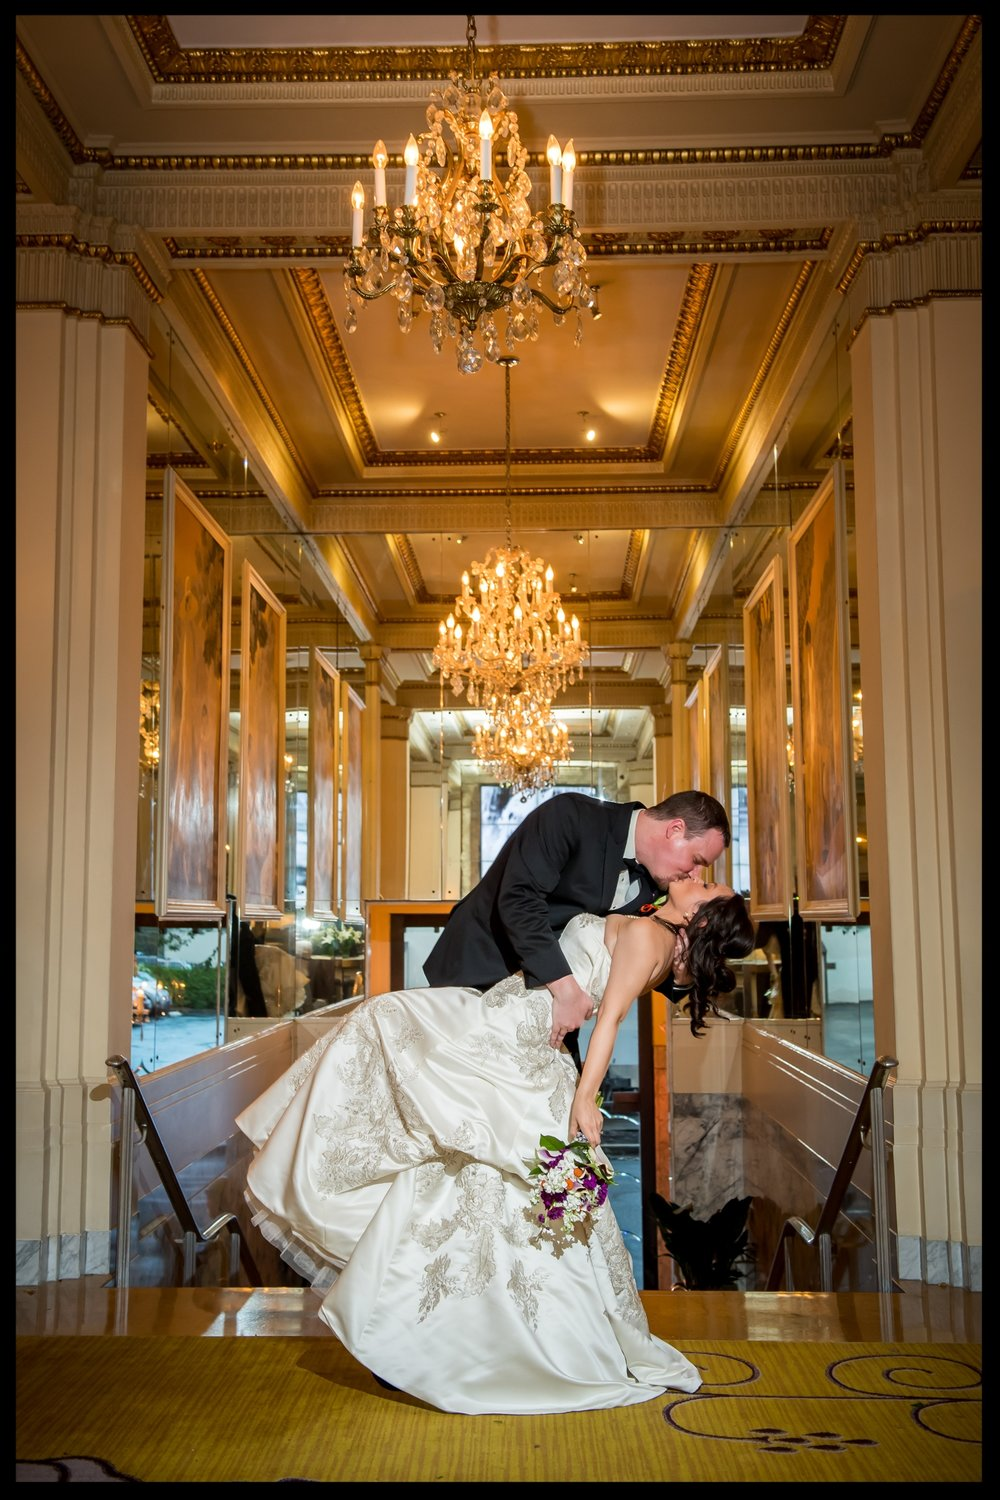 William_James_Photography_Wedding_2017-120.jpg